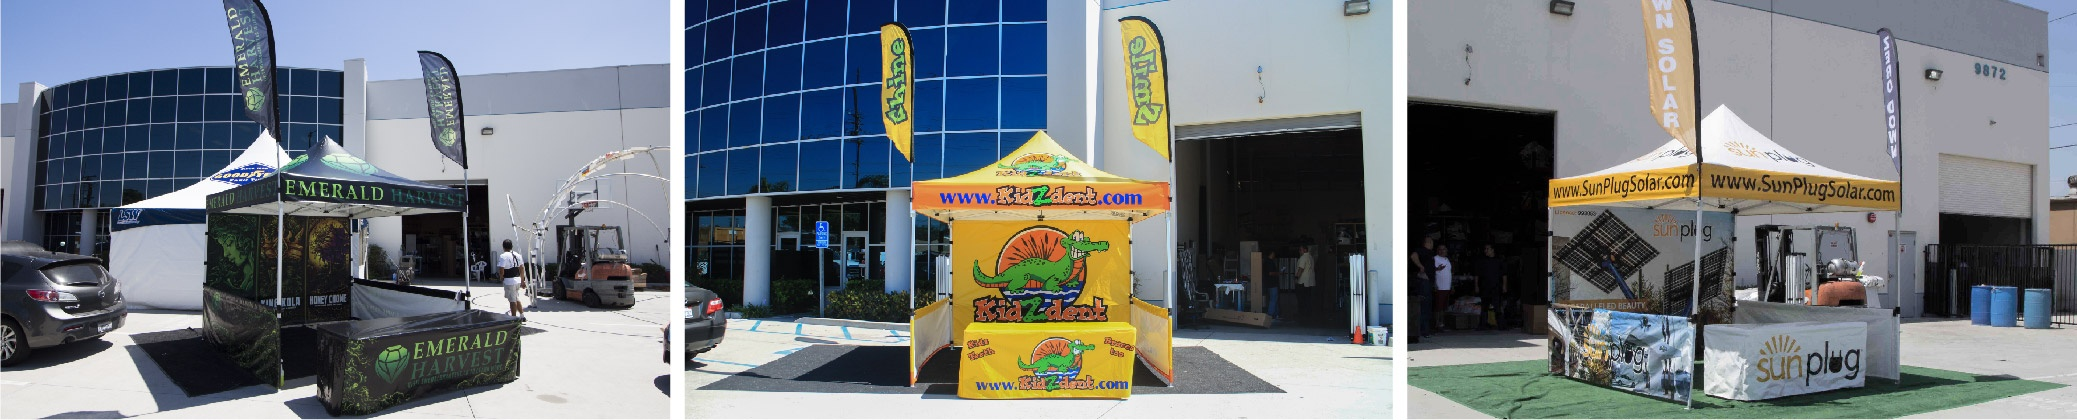 various adverting flag canopy packages with custom printing- all of them installed in front of the Promotional Design Group building in Los Angeles